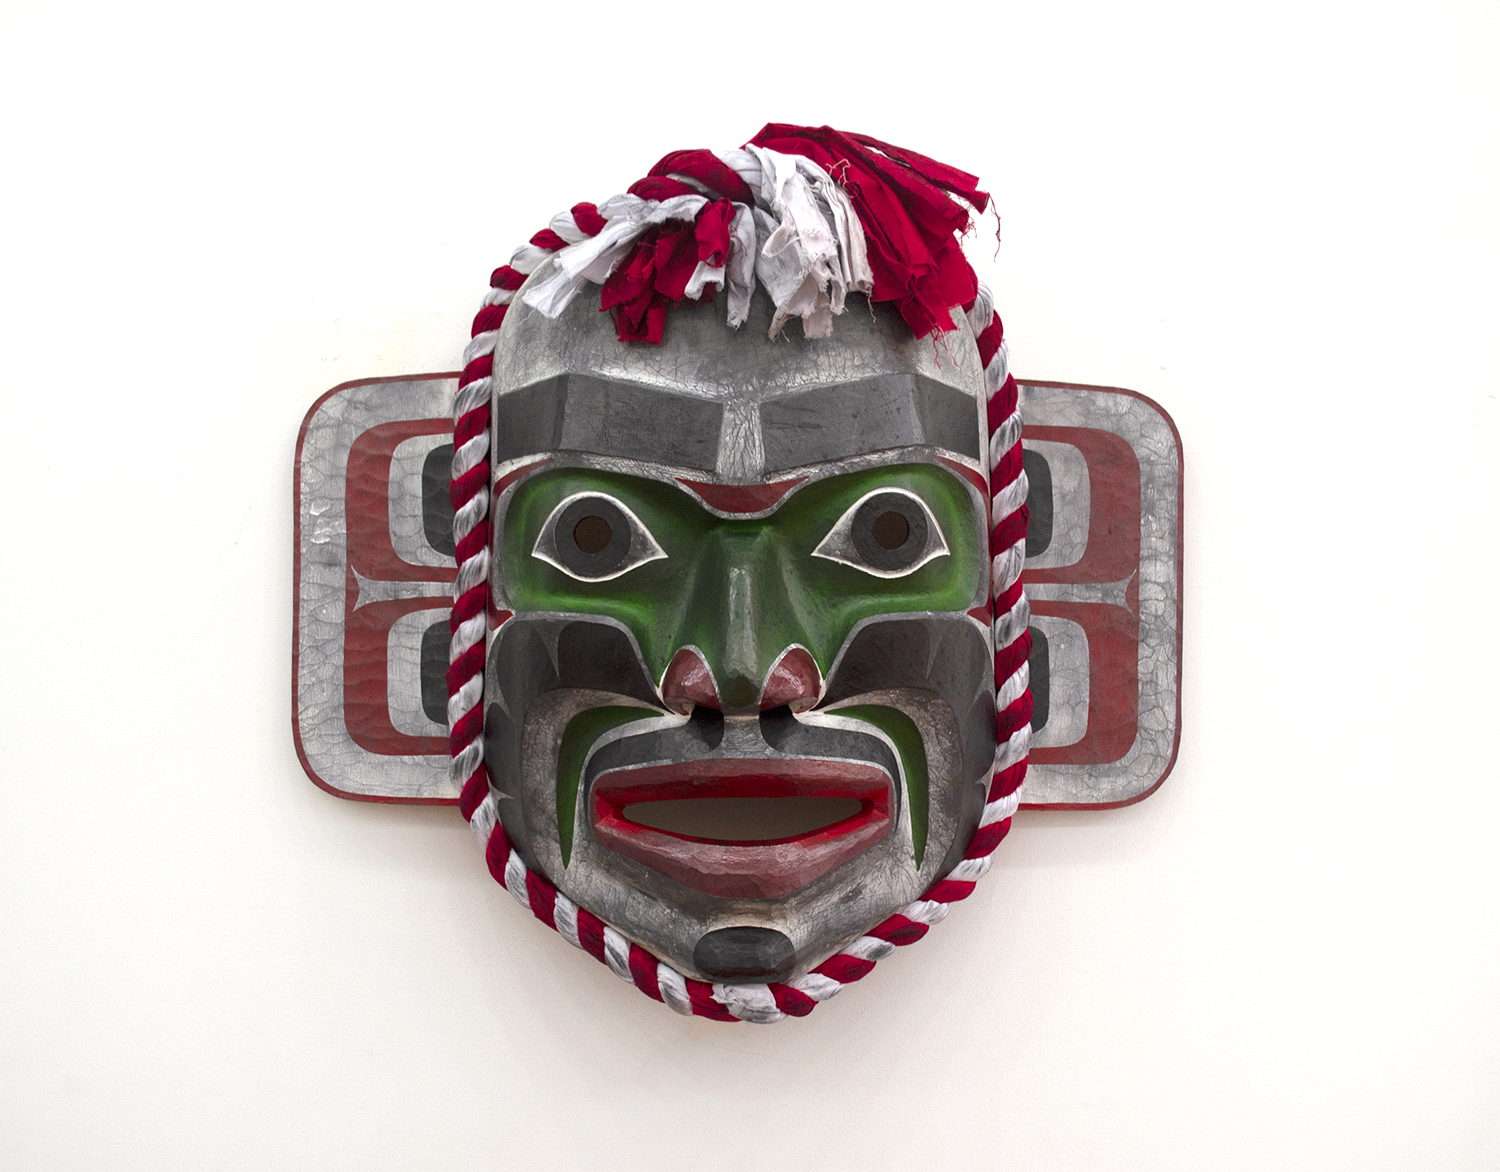 Atlakim Door Mask, 2019